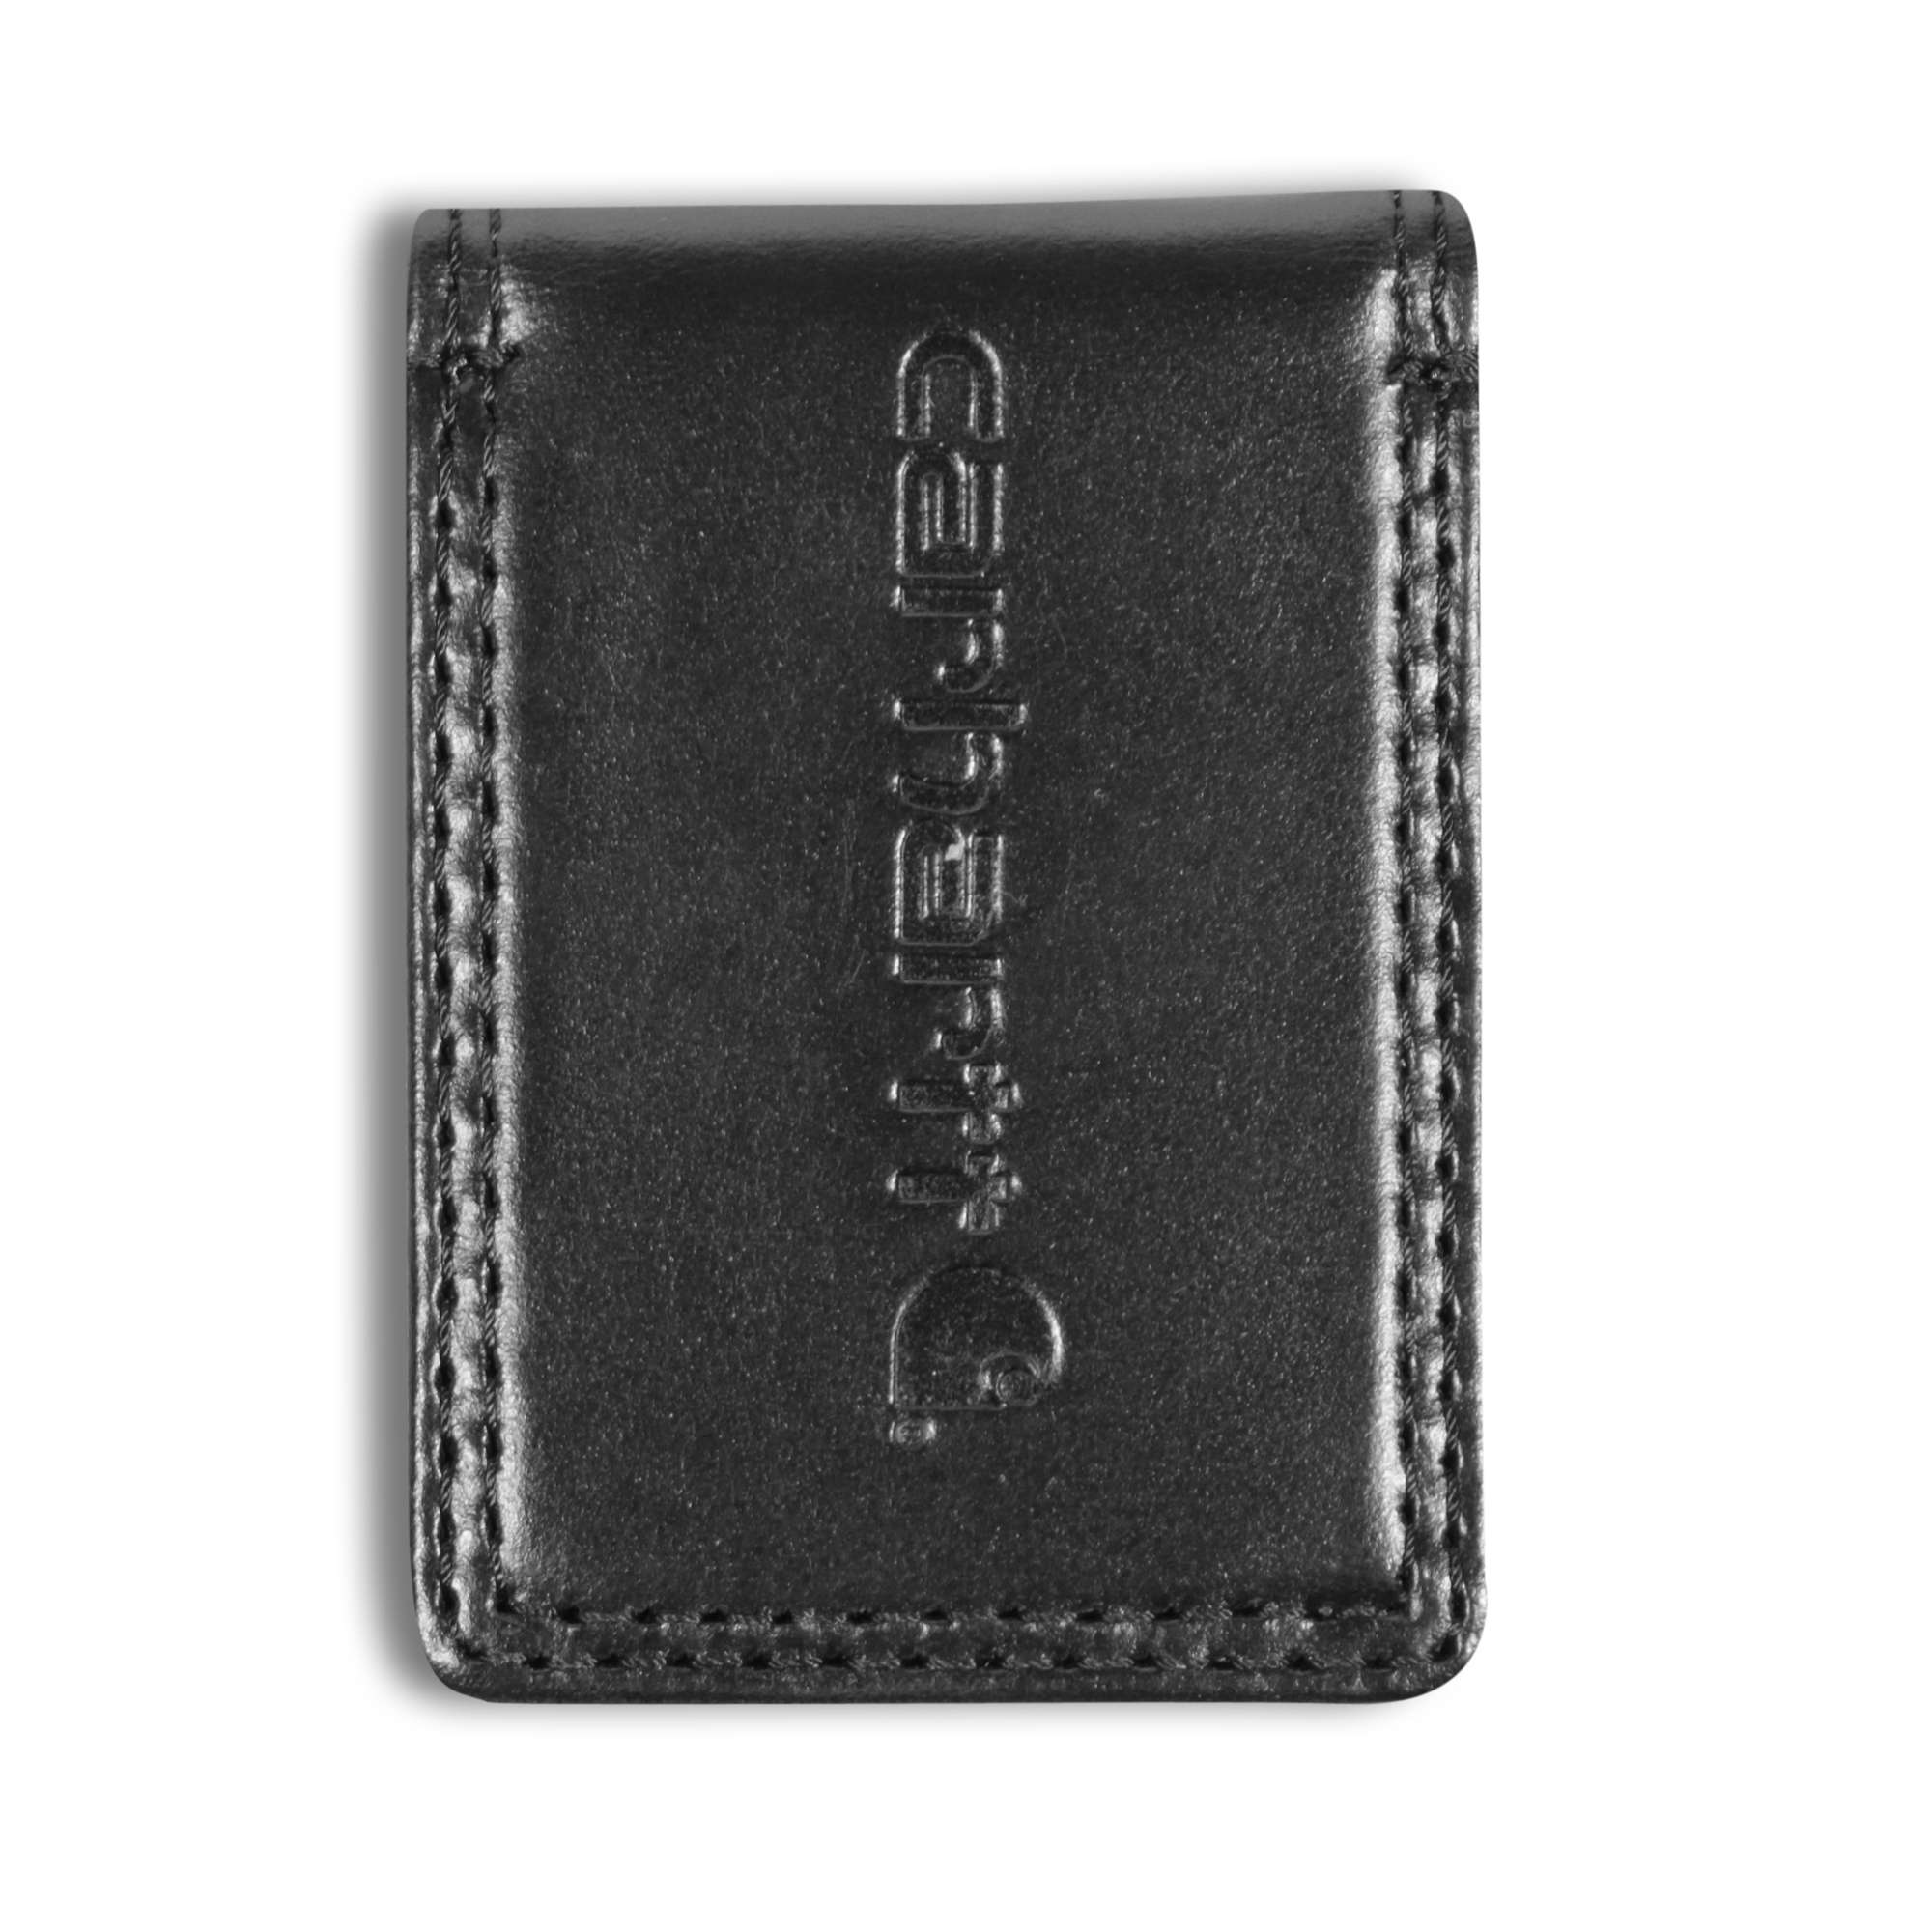 Carhartt Workwear Money Clip